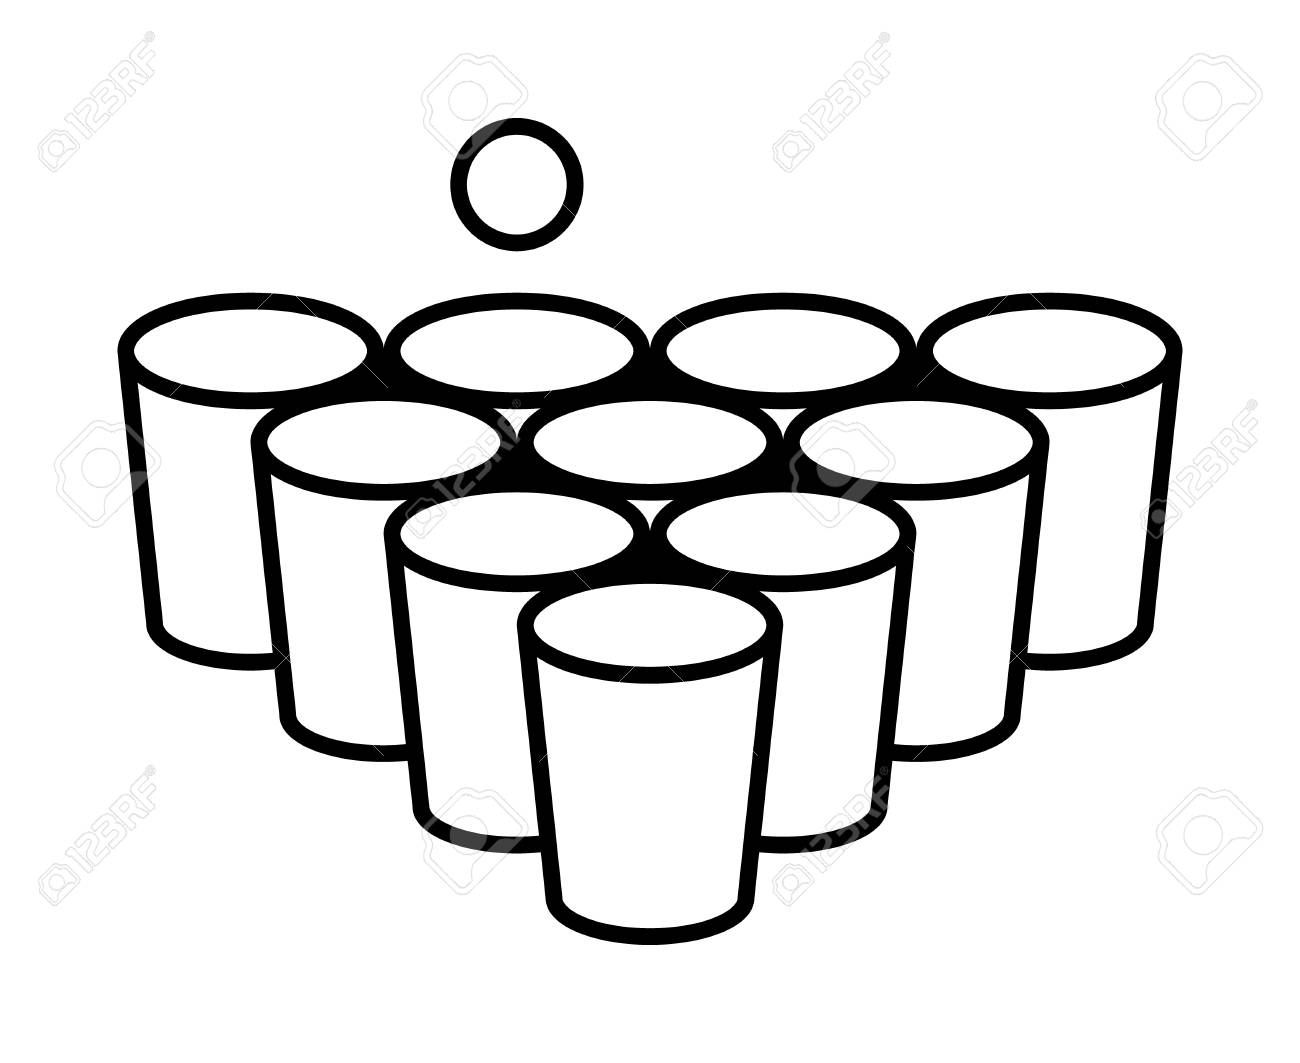 Beer pong or beirut drinking game with cups with ball line art